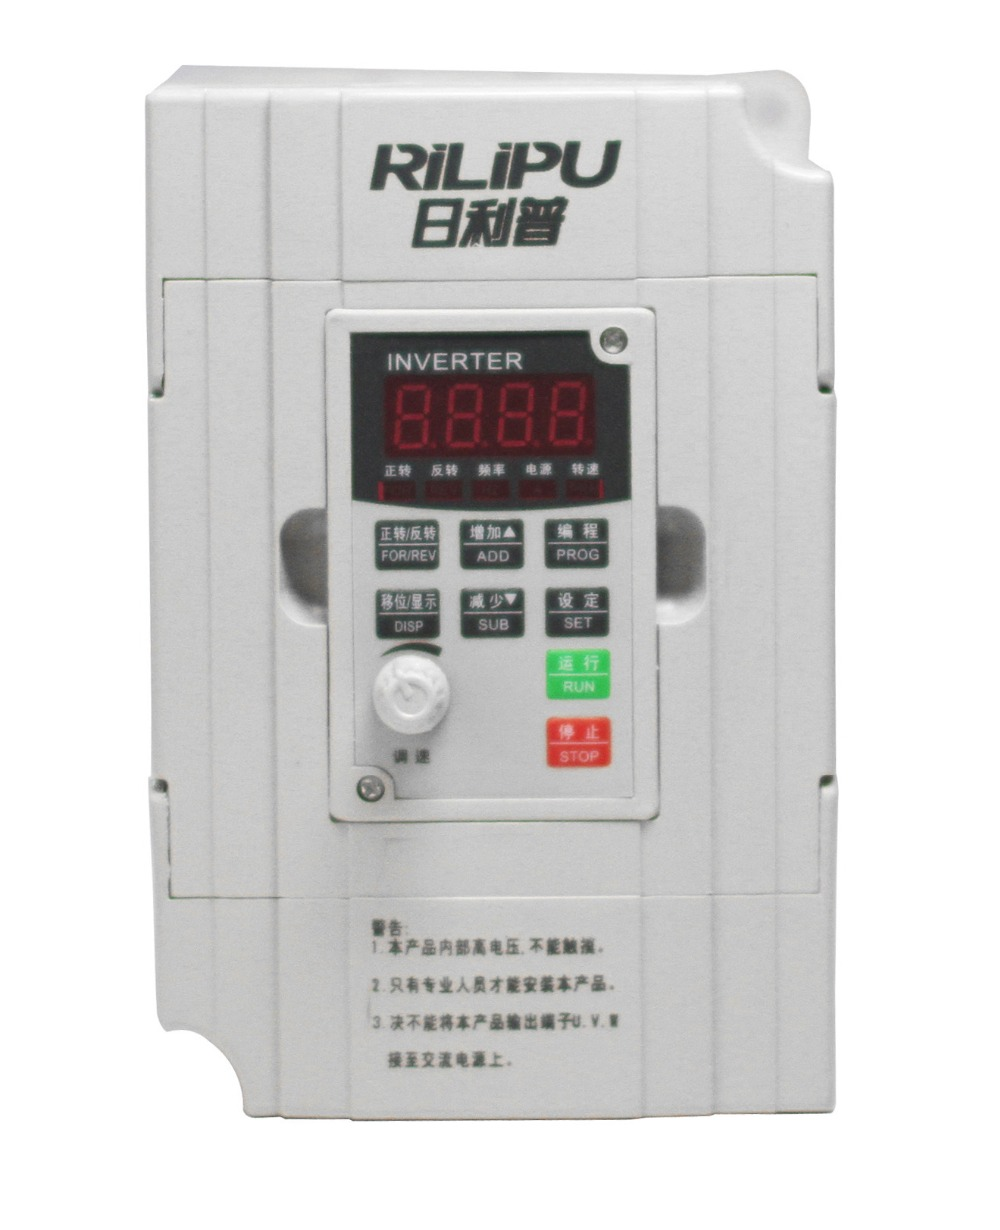 Single phase 220V input Three phase output  VFD Inverter General Frequency Inverter  Spindle carving machine 220v 0.75kw 750W 2 2kw single phase input to 380v output three phase inverter vfd driver good in condition for industry use module vector